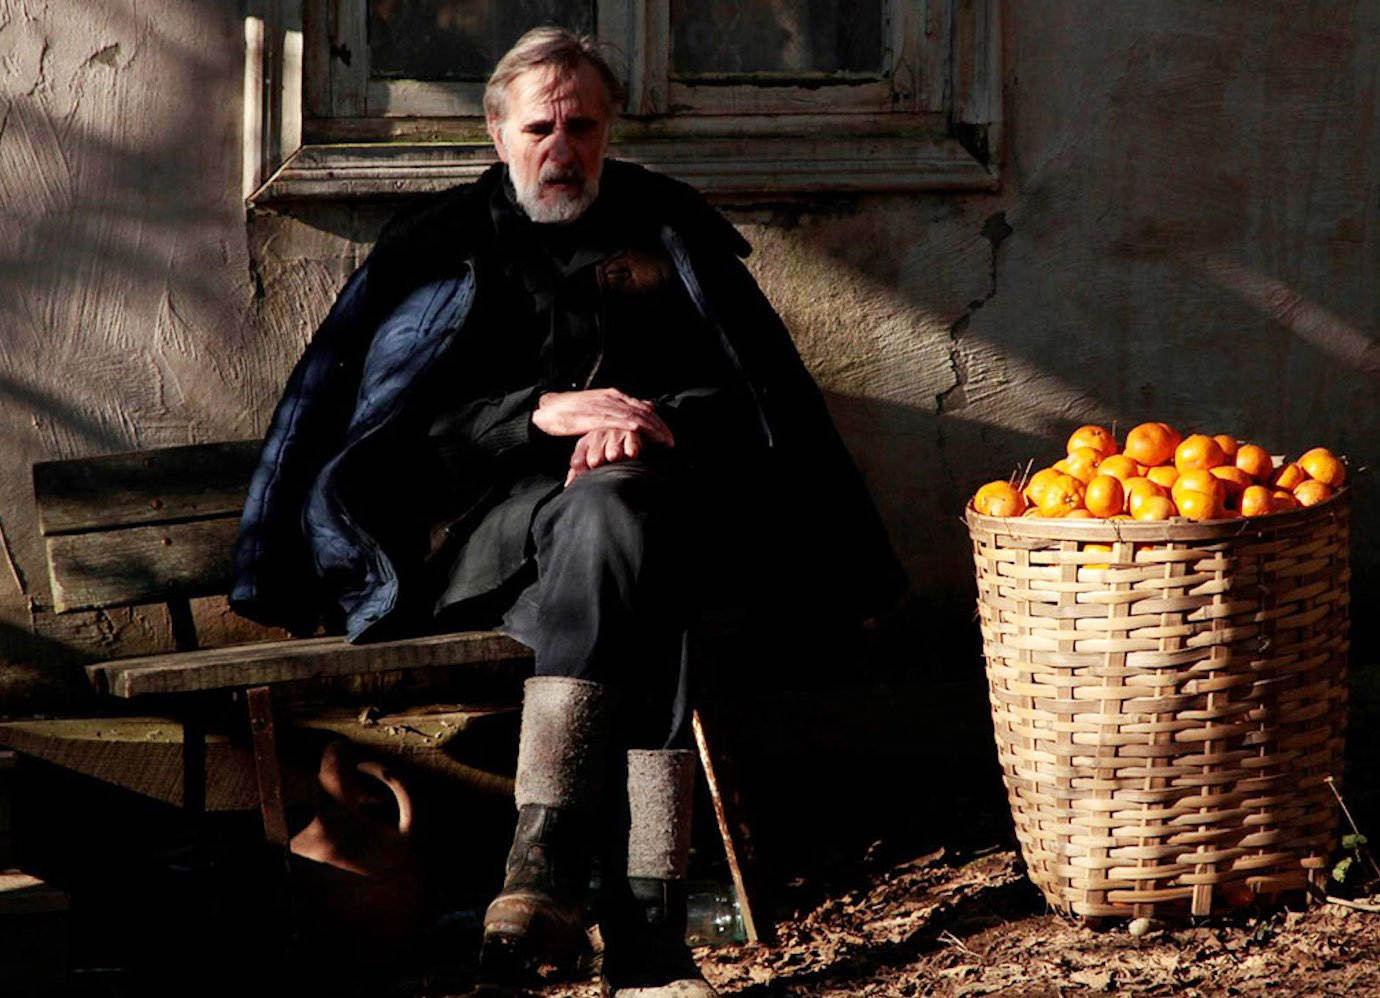 Set against the backdrop of war, Tangerines is a bittersweet exploration of war and the hope of atonement | Film of the Week